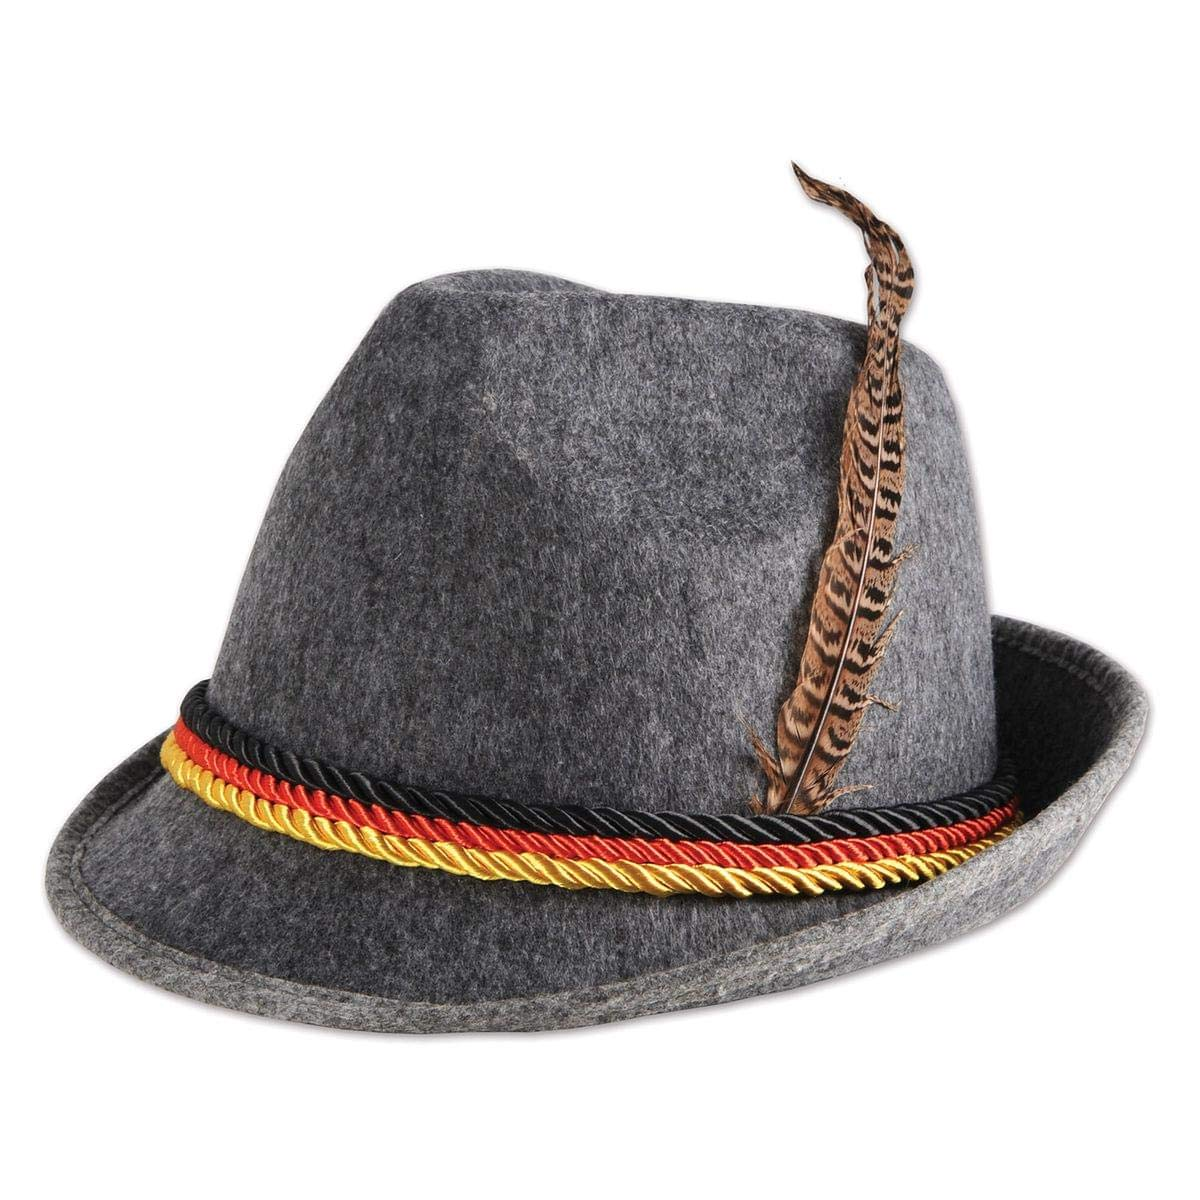 bc41be189e716 Best Rated in Men s Costume Headwear   Helpful Customer Reviews ...